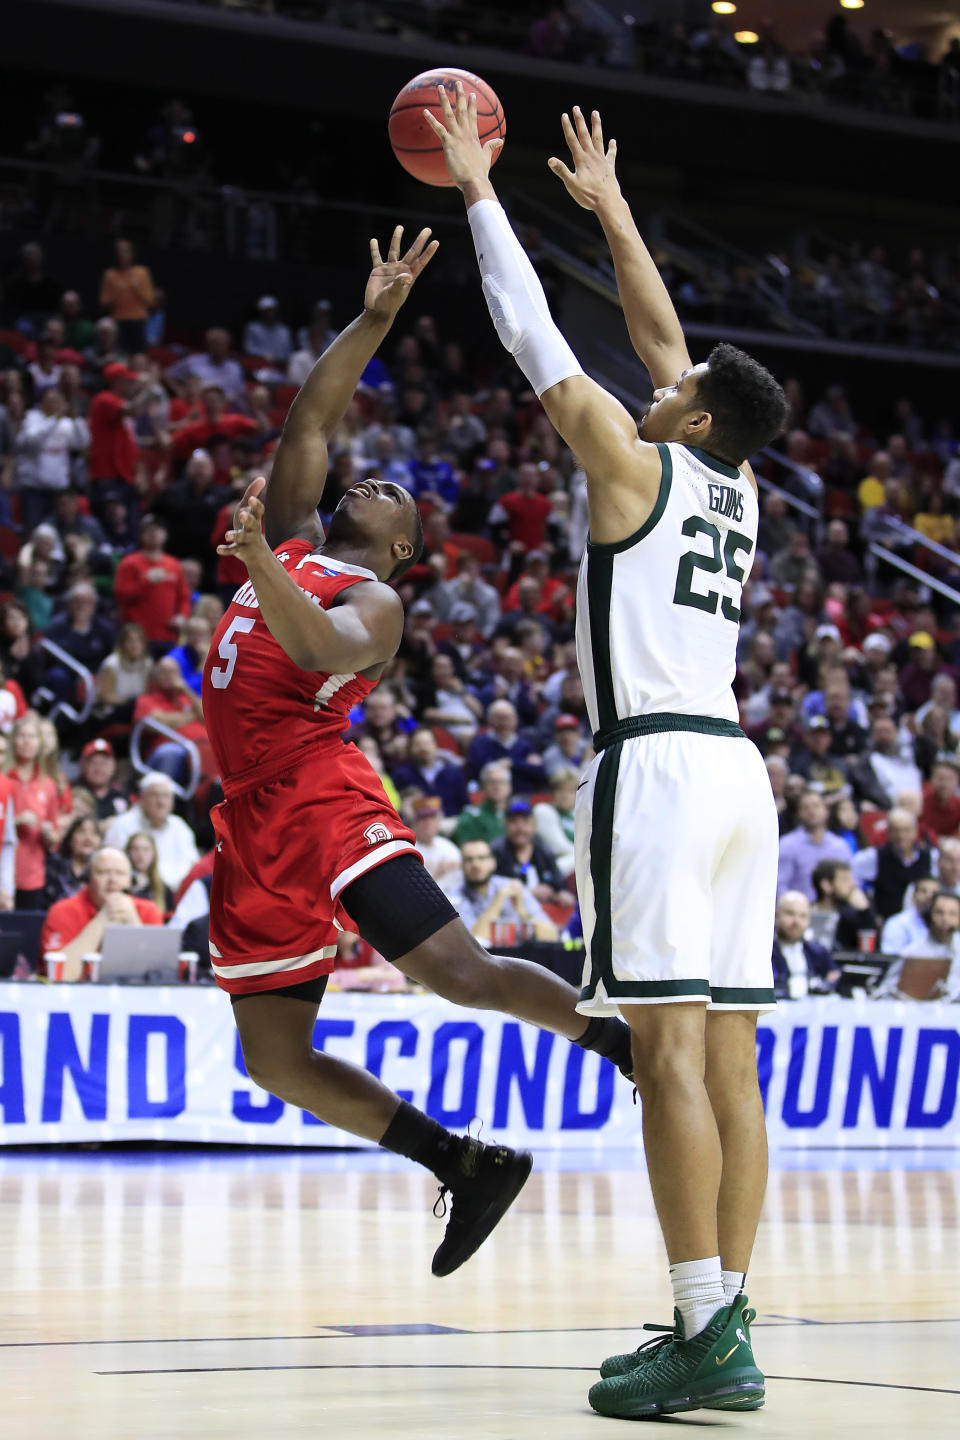 <p>Darrell Brown #5 of the Bradley Braves throws up a shot against Kenny Goins #25 of the Michigan State Spartans during their game in the First Round of the NCAA Basketball Tournament at Wells Fargo Arena on March 21, 2019 in Des Moines, Iowa. (Photo by Andy Lyons/Getty Images) </p>